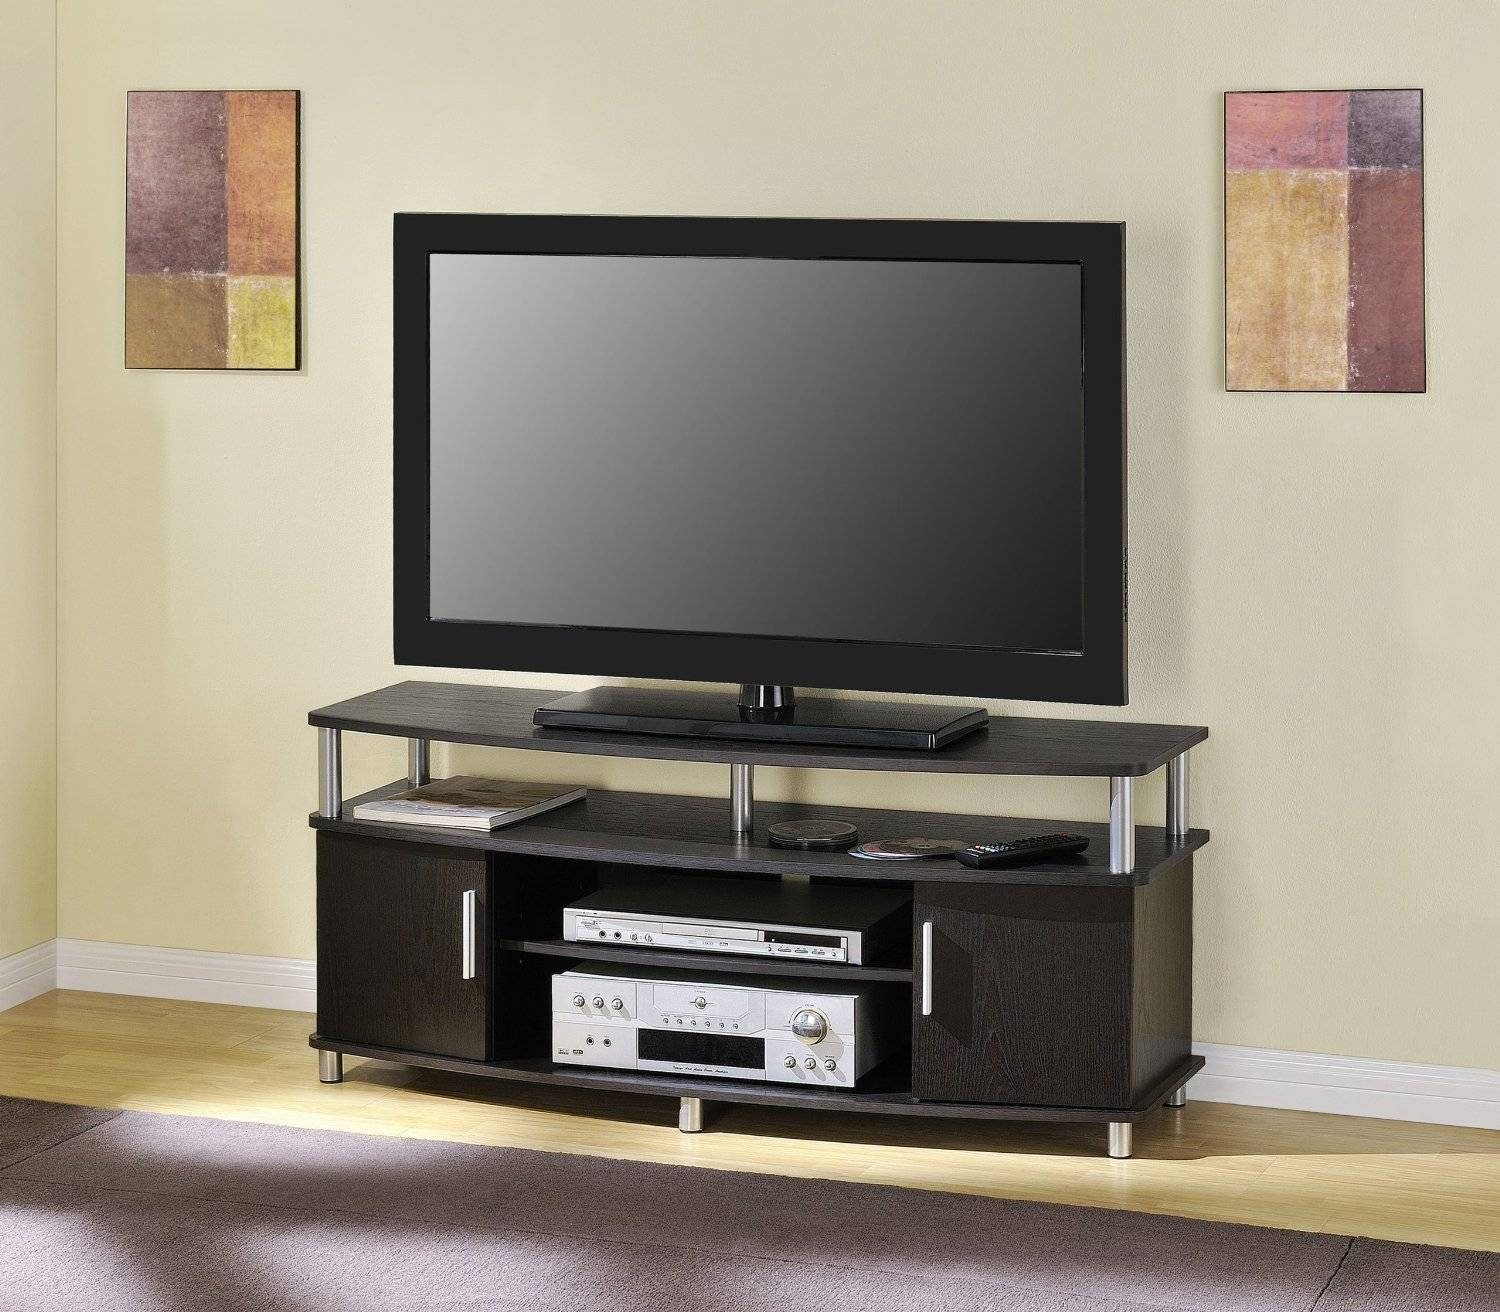 Small Black Oak Wood Tv Stand With Countertop And Cabinet Storage In Oak Tv Stands For Flat Screens (View 15 of 15)